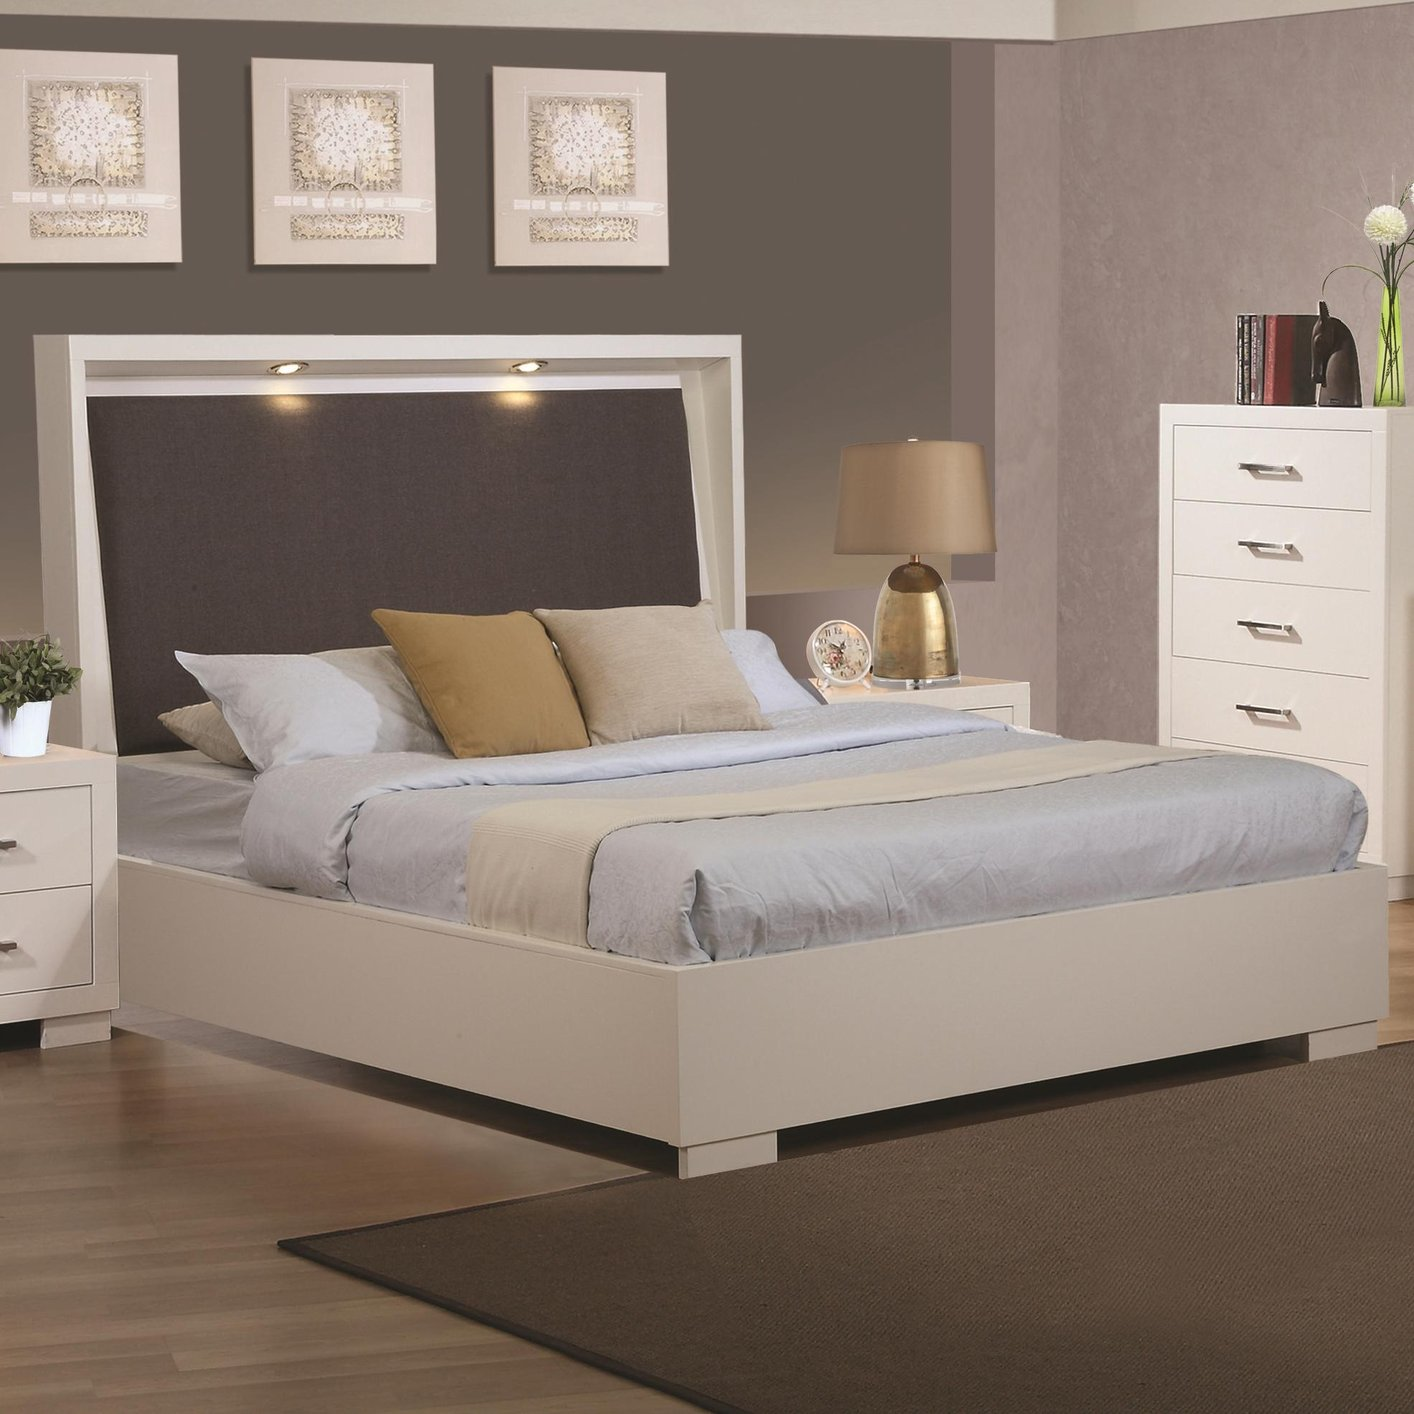 Wood king size bedroom sets car interior design for Cal king bed size